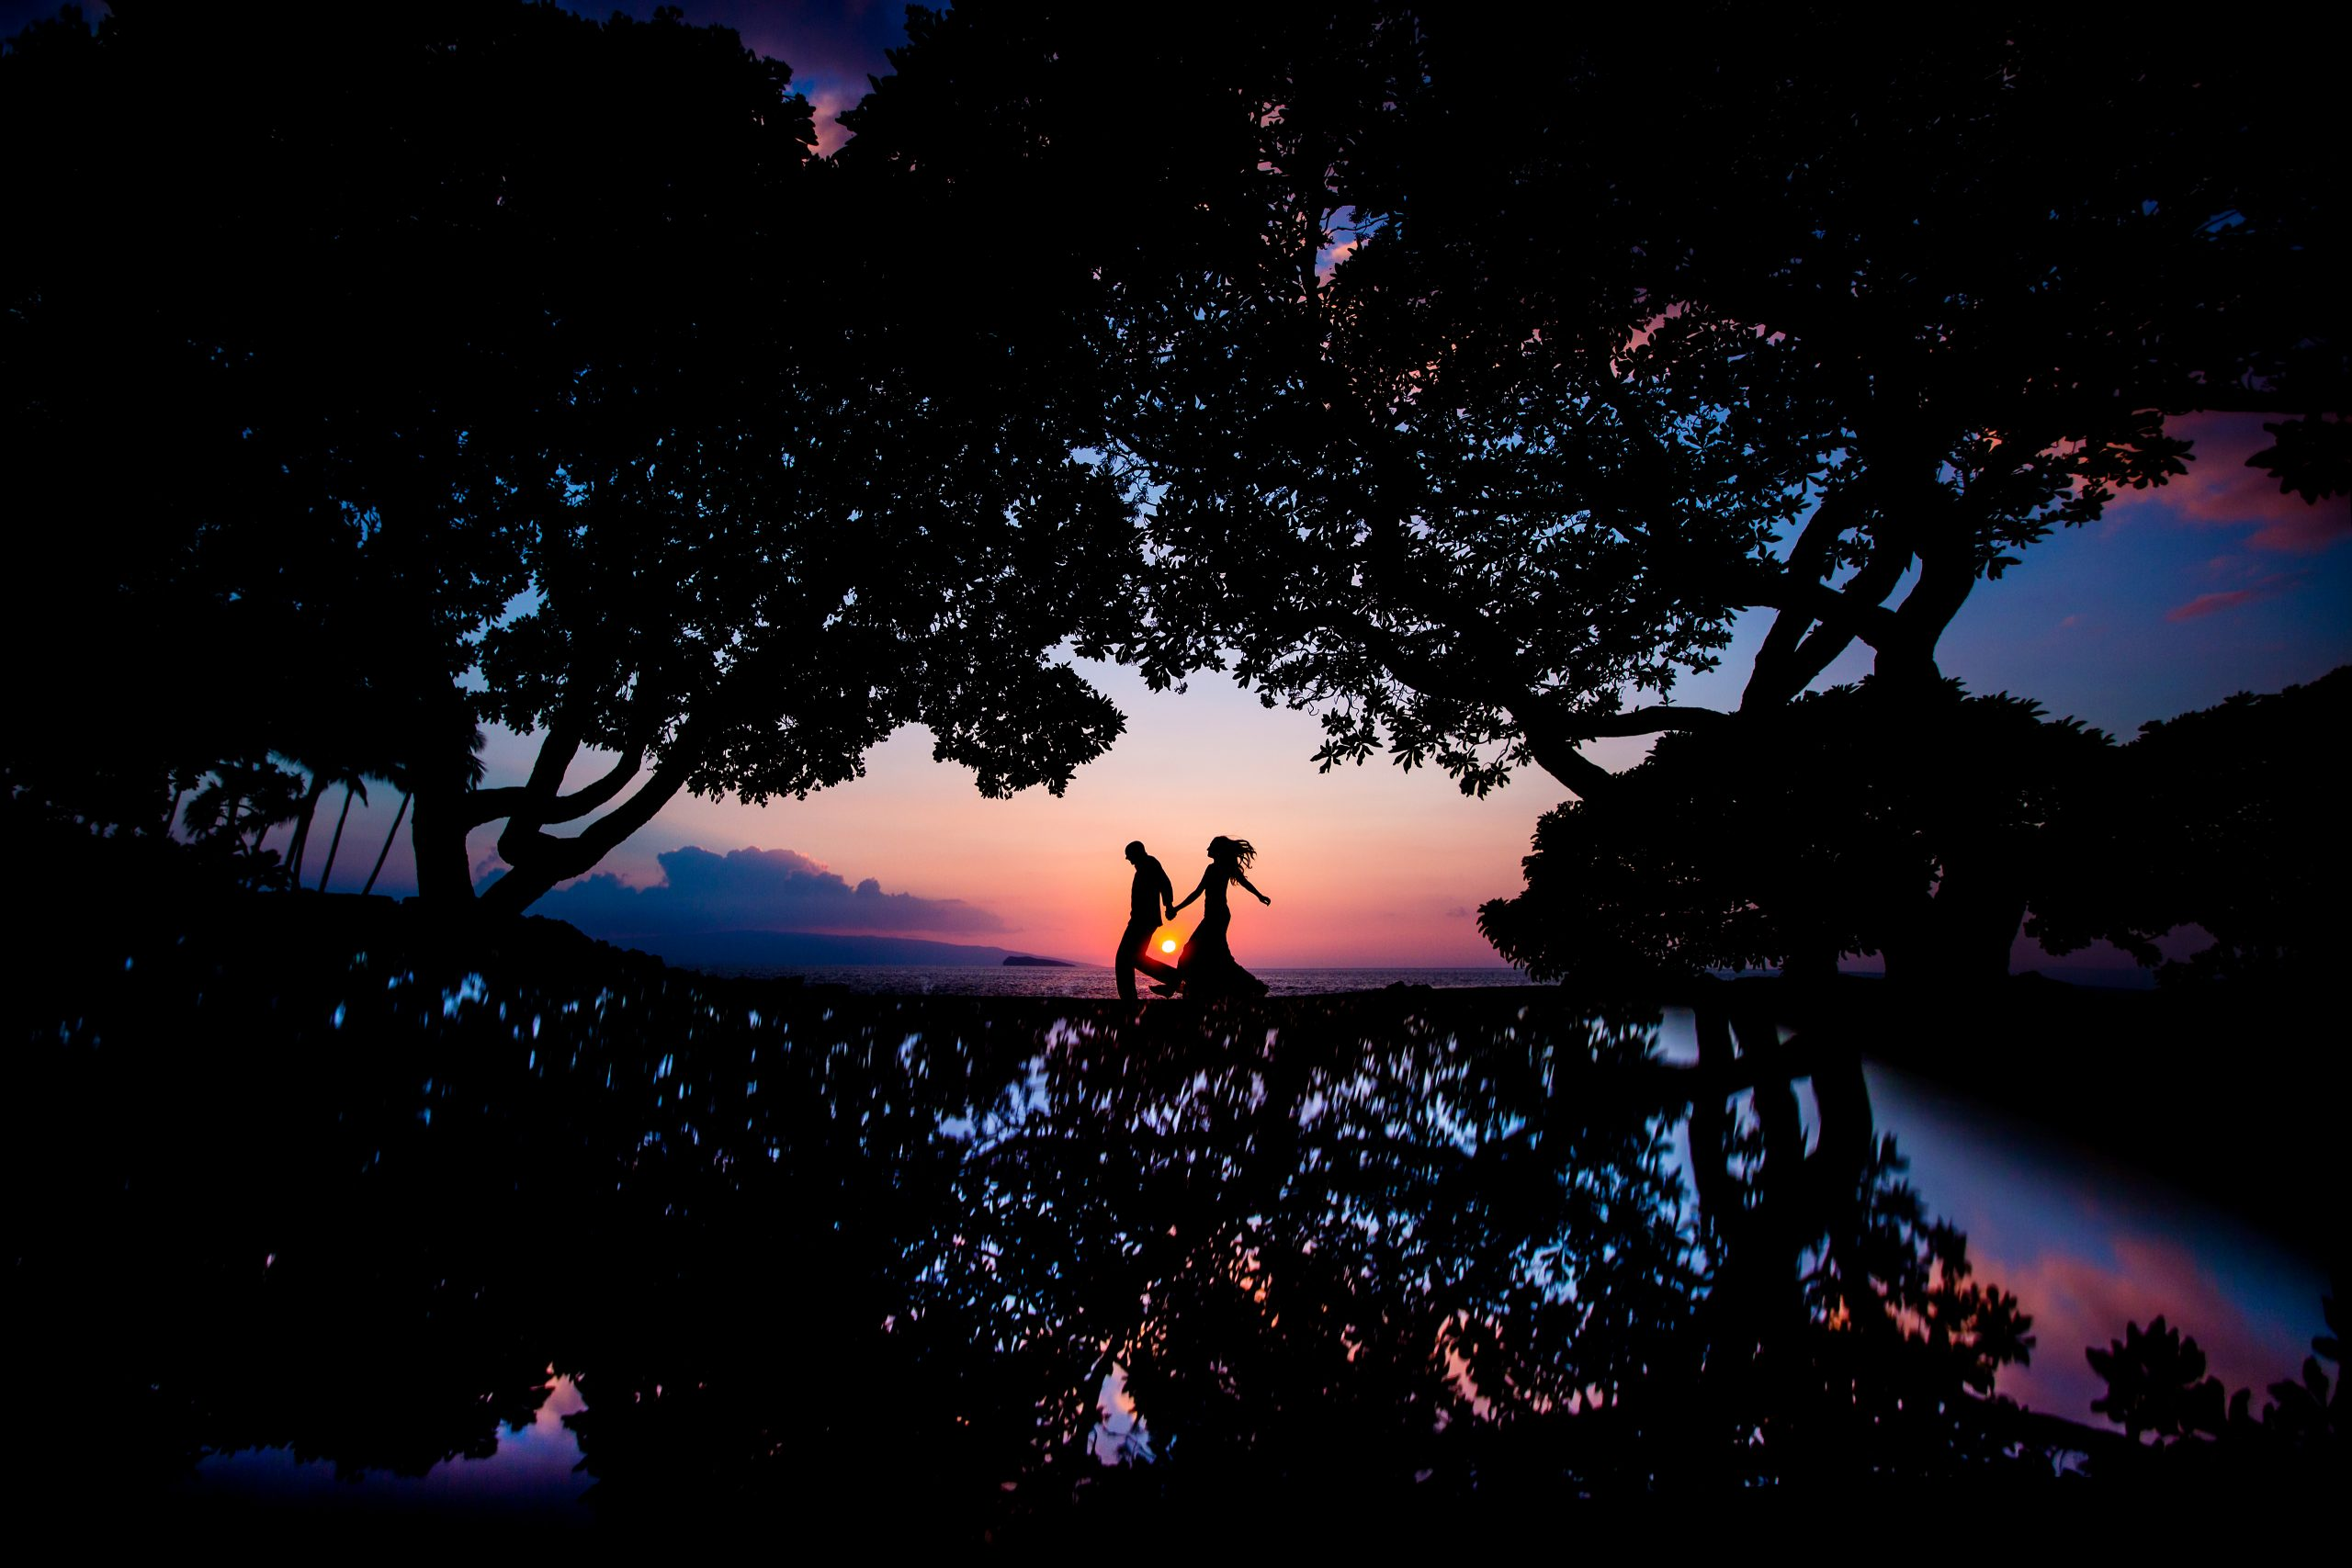 Silhouette of bride and groom running at sunset in Maui, Hawaii